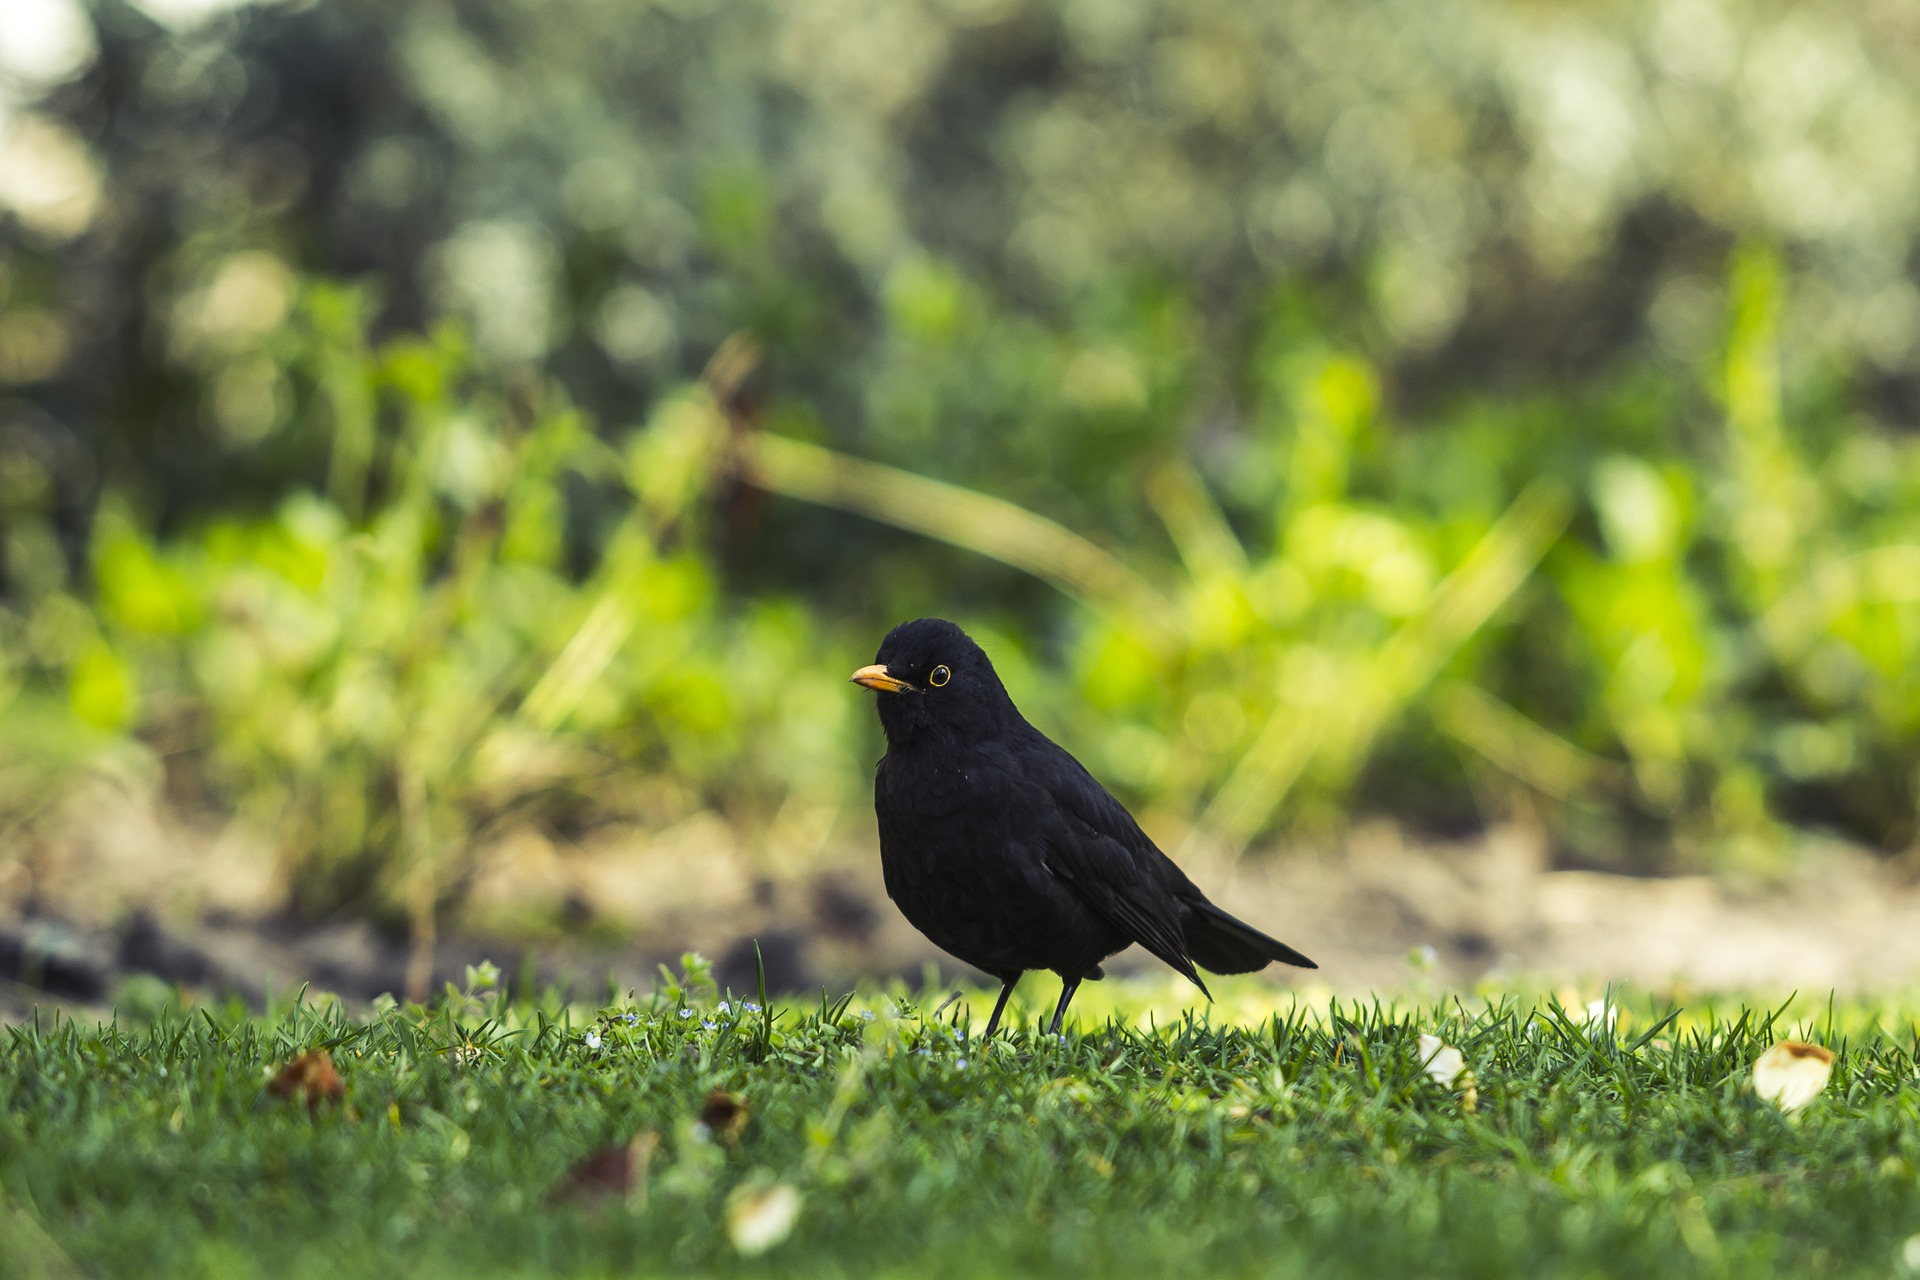 common-blackbird-1287217_1920_1.jpg